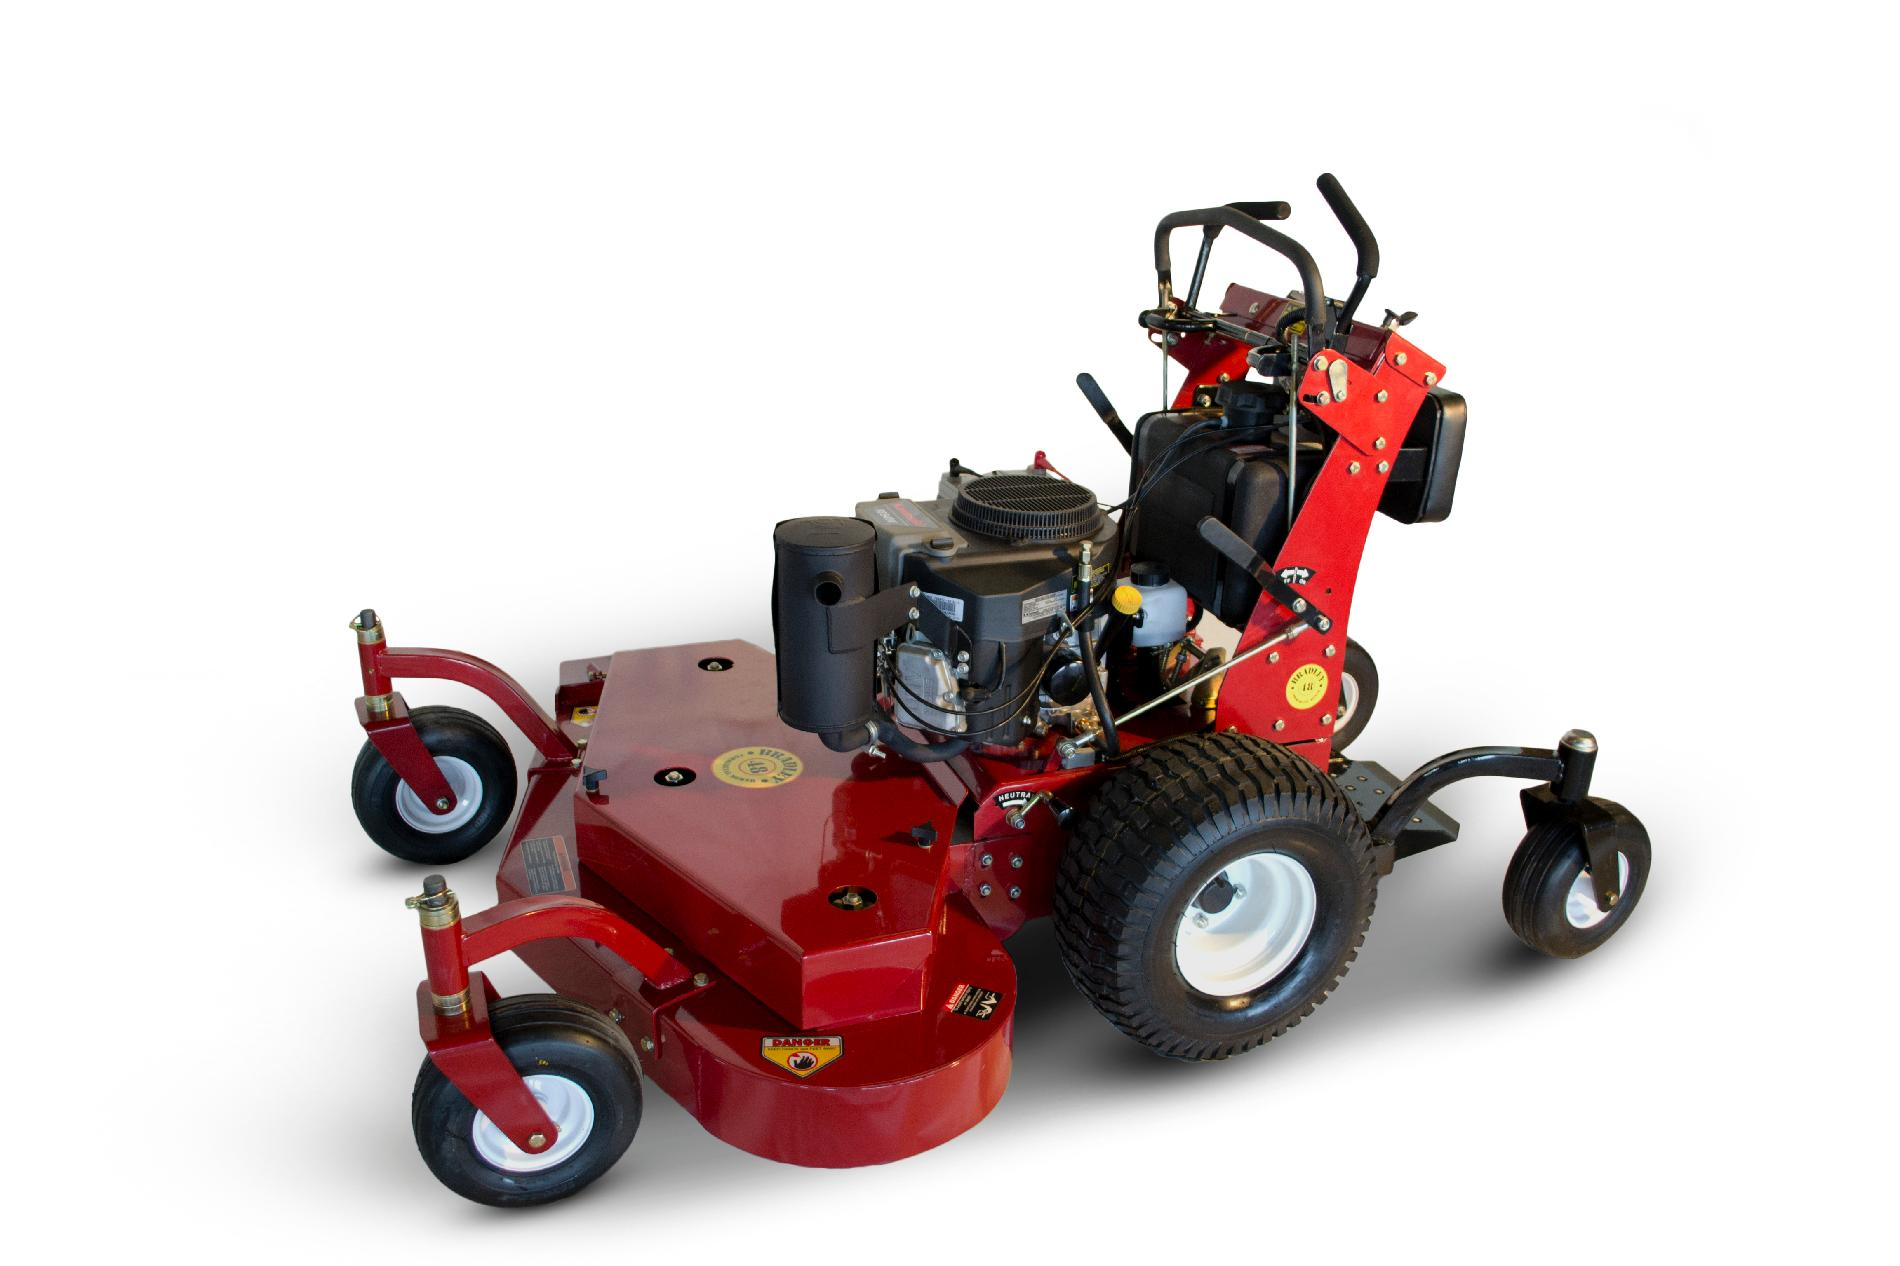 Bradley 48″ one of the best commercial walk behind mowers